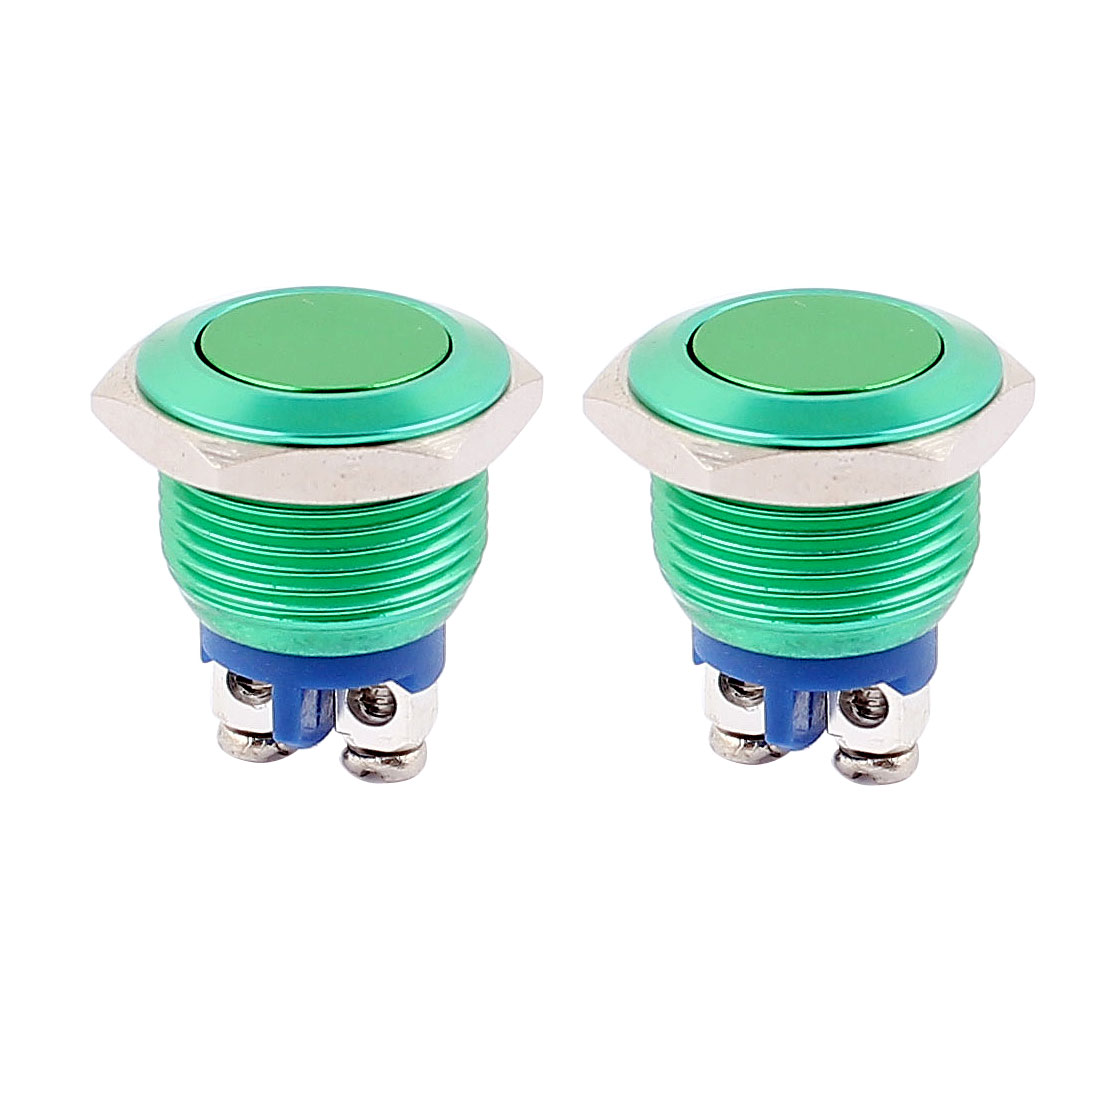 2Pcs 16mm Mounted Thread SPST Momentary Galvanized Flat Head Push Button Switch Green